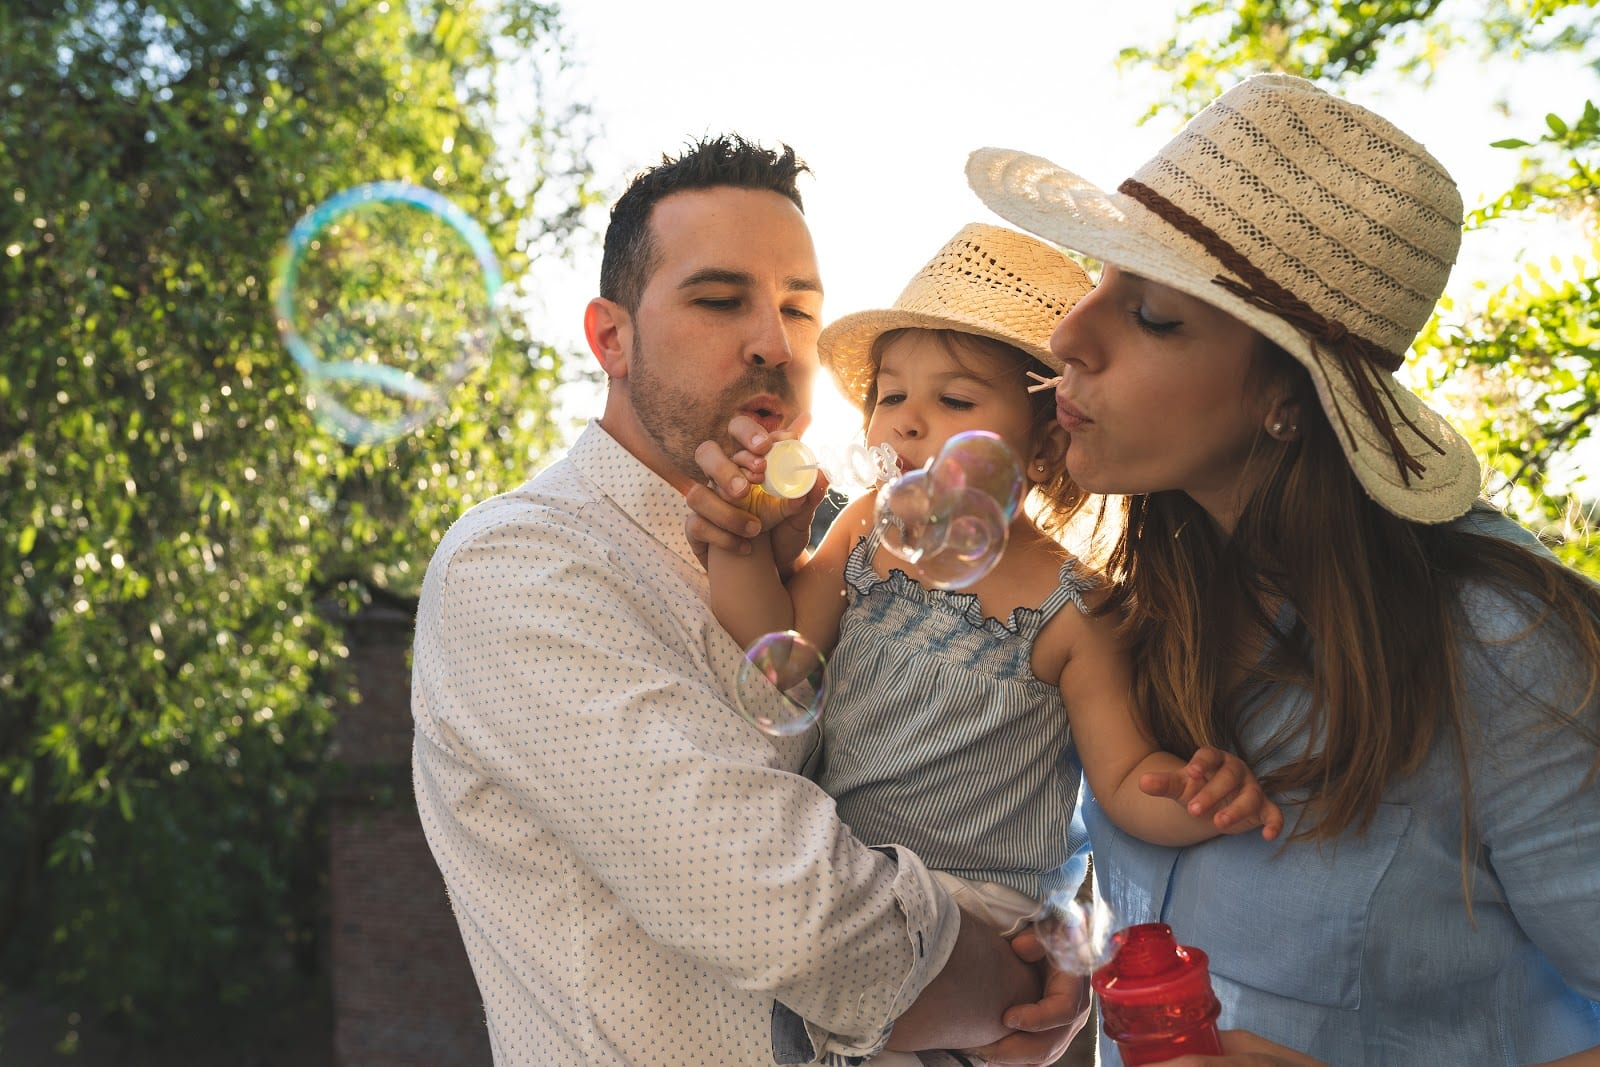 happy family blowing bubbles